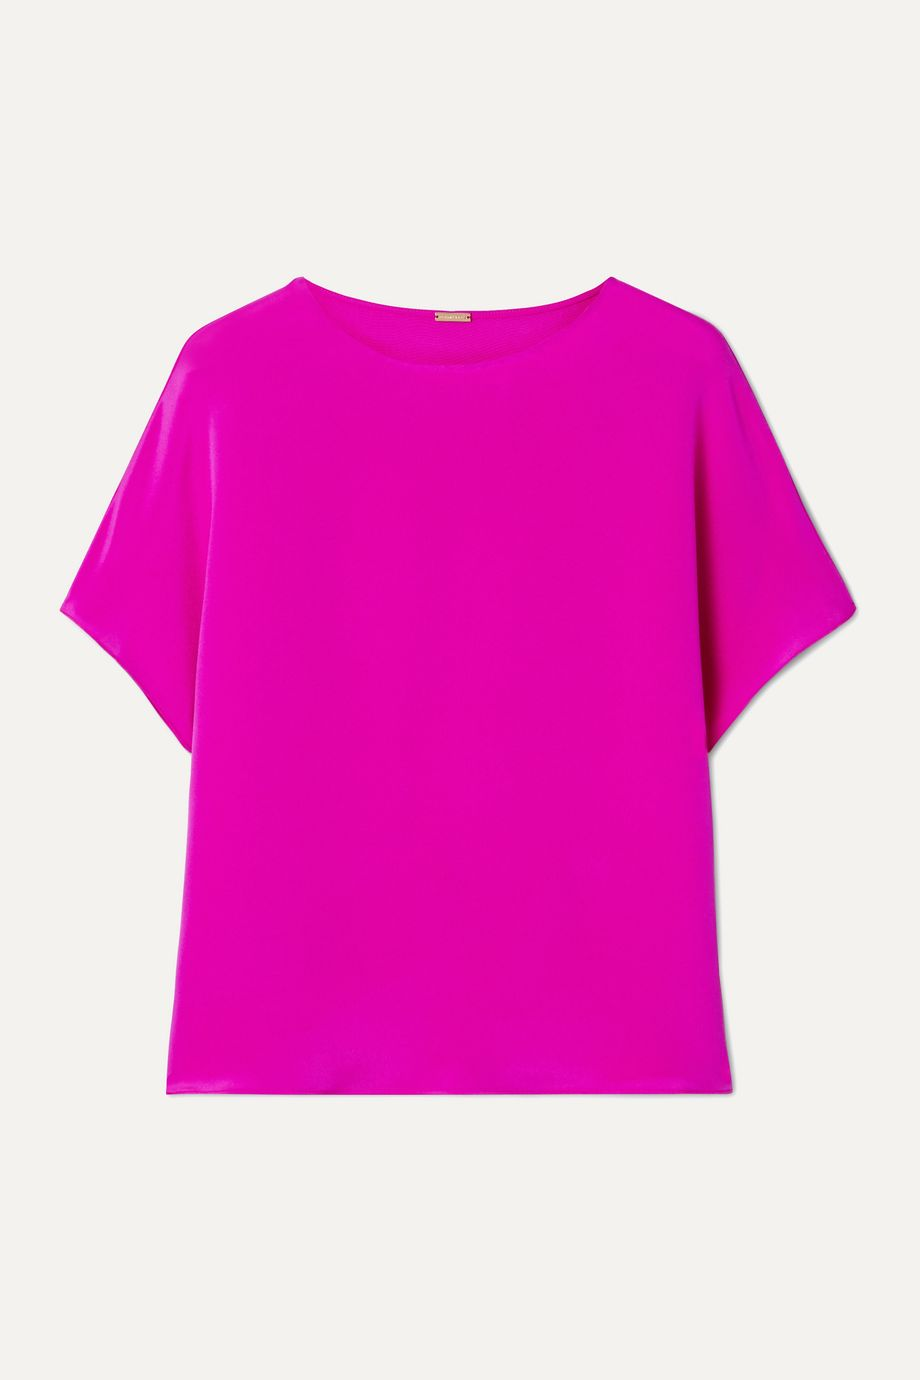 Adam Lippes Neon silk crepe de chine top